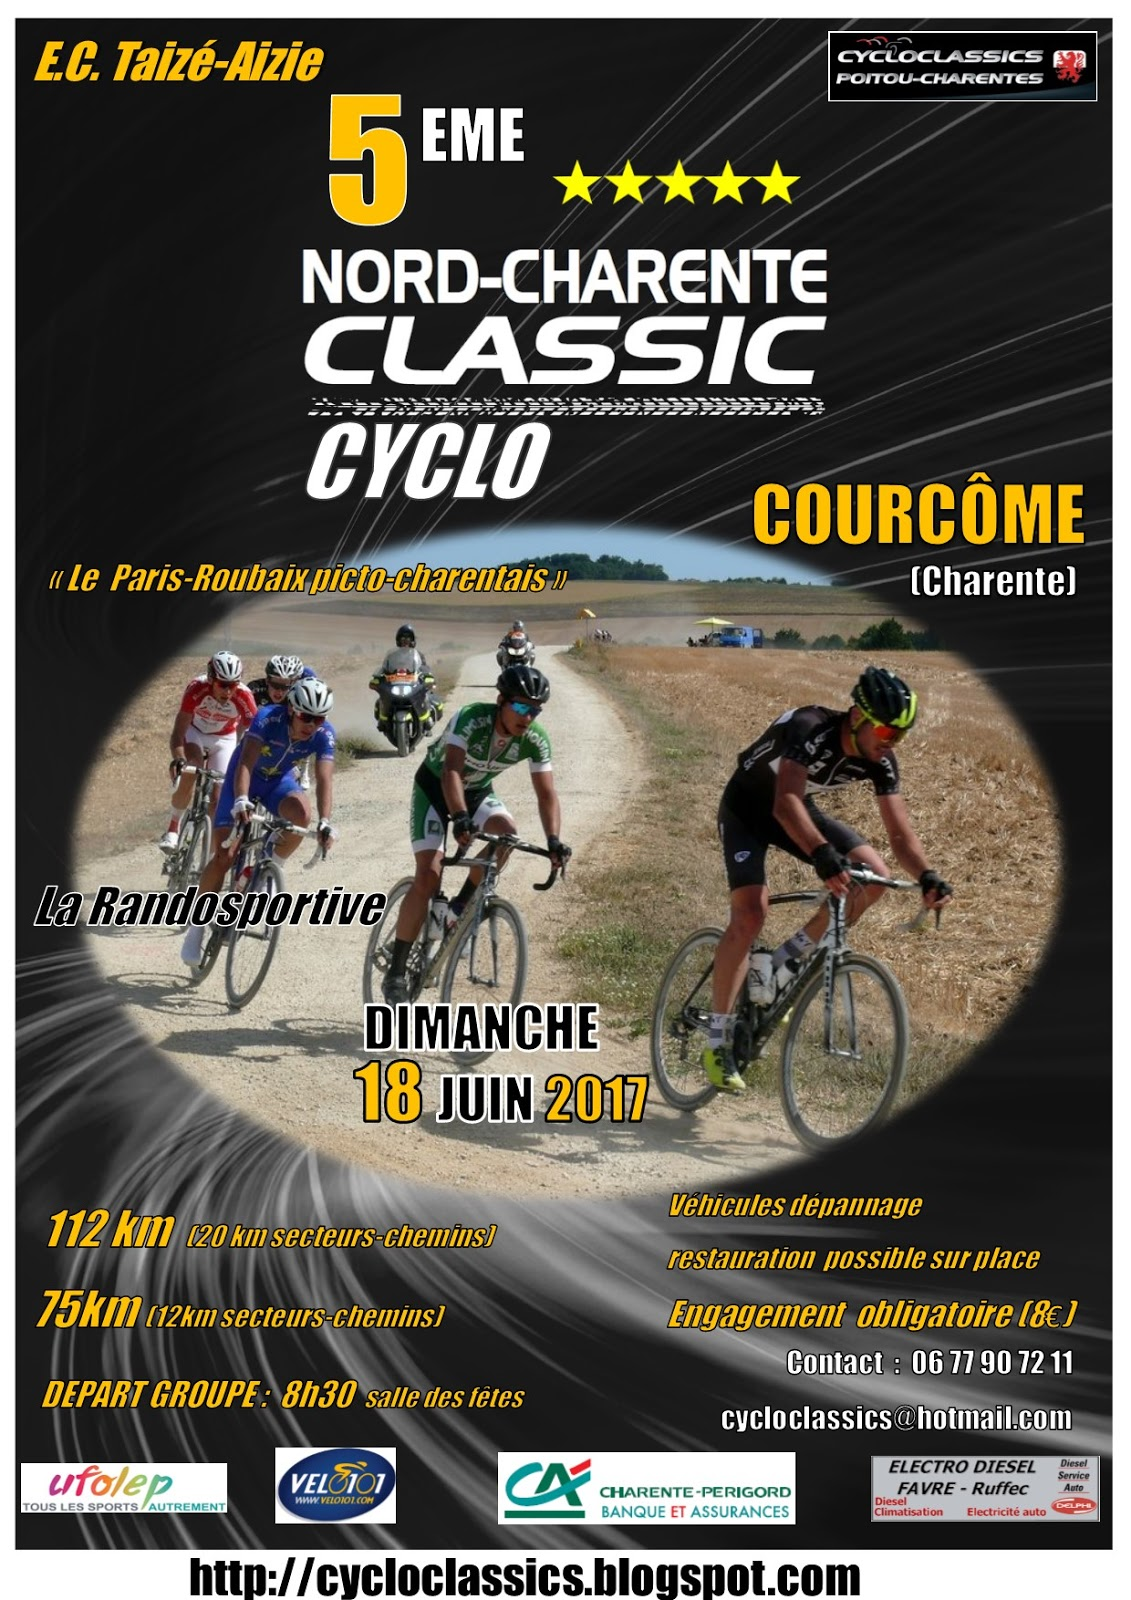 cycloclassics poitou charentes nord charente classic cyclo soyez l 39 appel du 18 juin. Black Bedroom Furniture Sets. Home Design Ideas